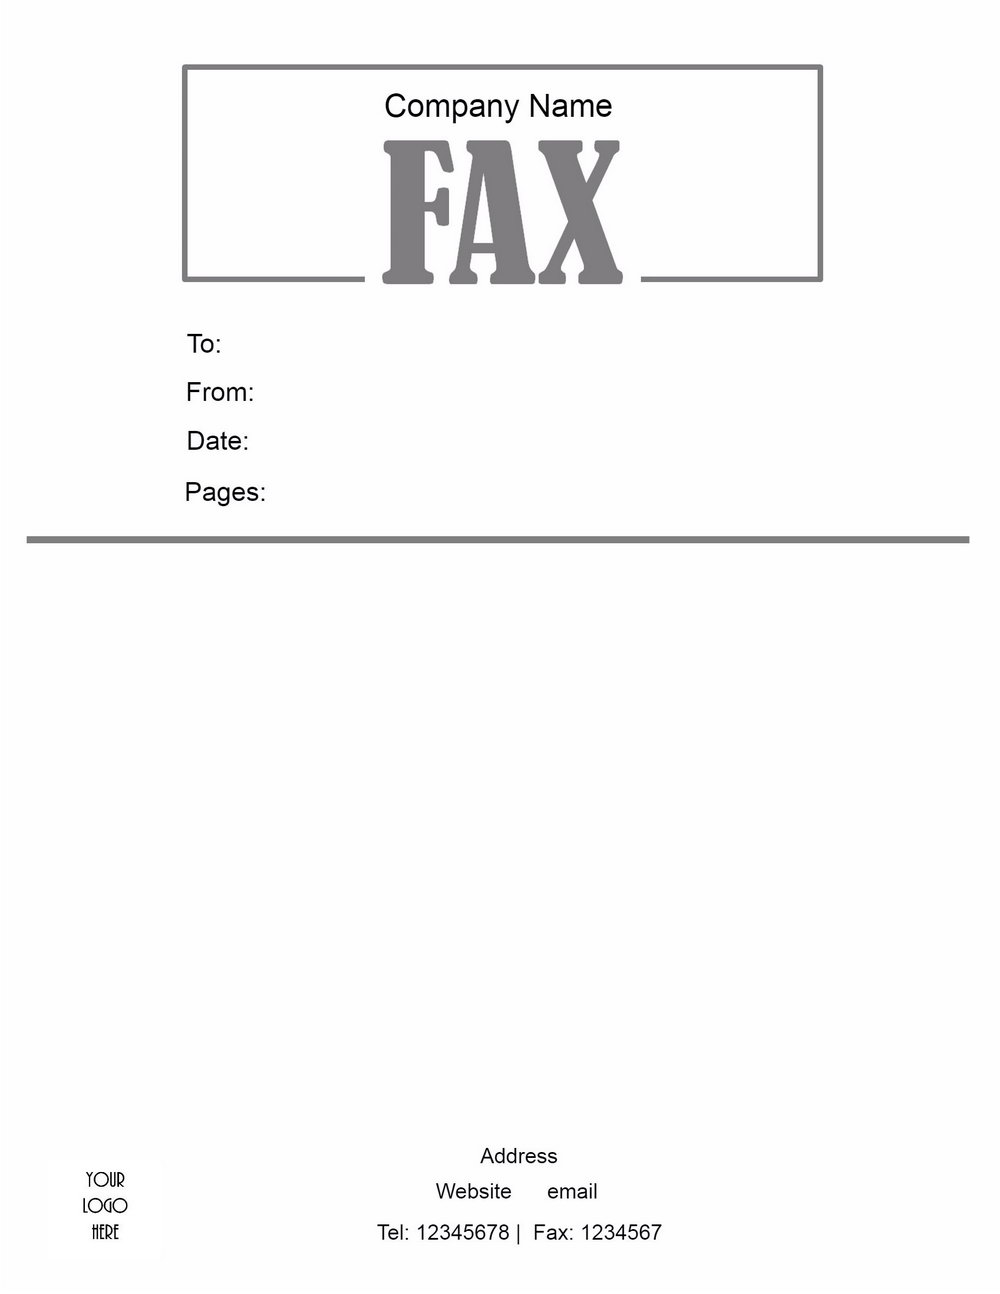 Free Template Fax Cover Sheet Microsoft Word